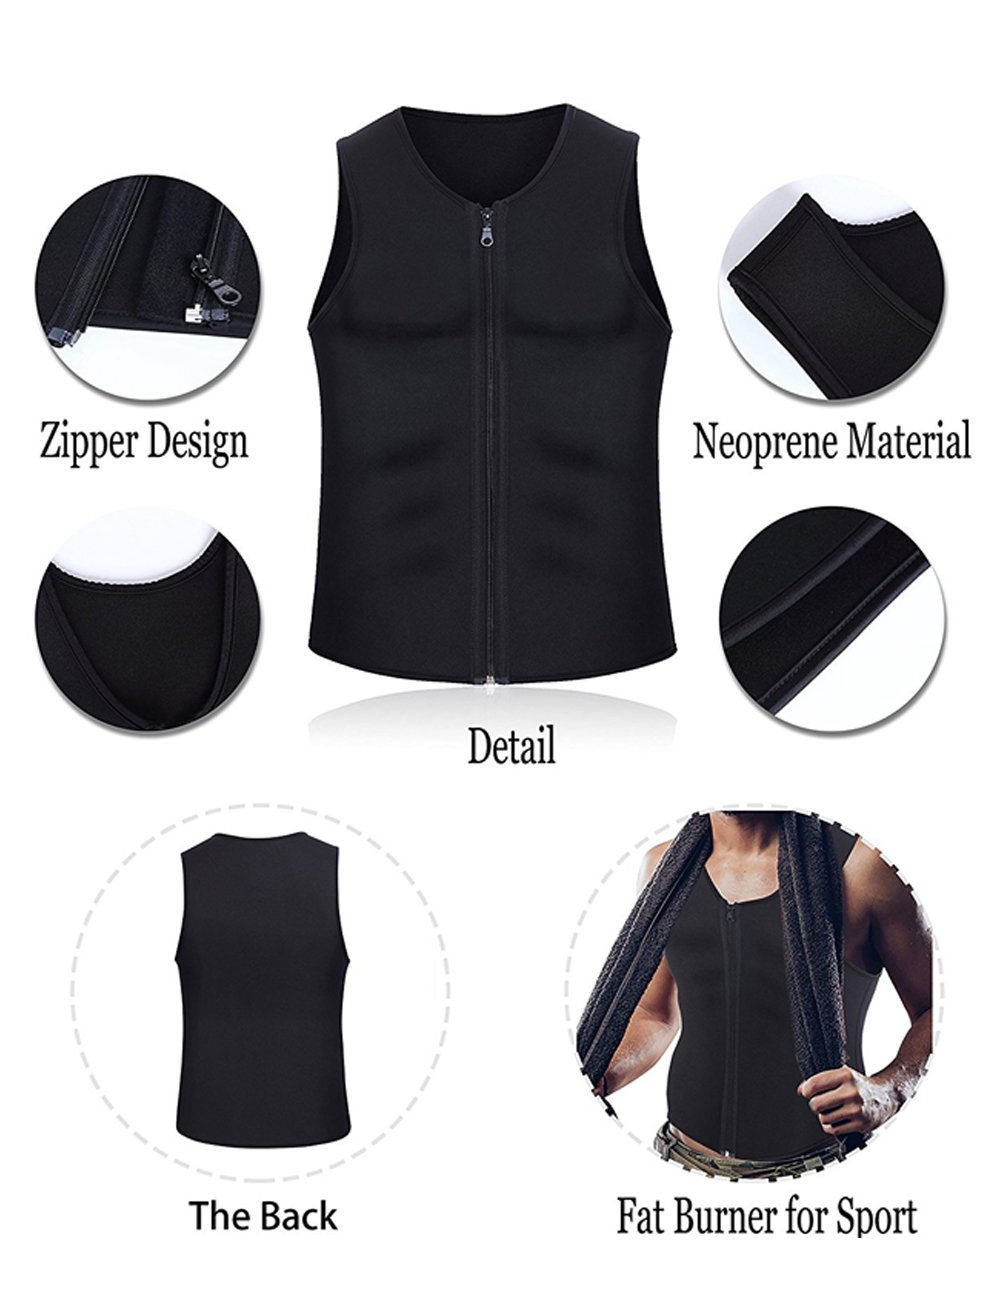 f58962bcbc HEYME Men s Slimming Vest Sauna Suits Gym Shirt Body Shaper for Body  Shaping Neoprene 4XL  Amazon.co.uk  Clothing